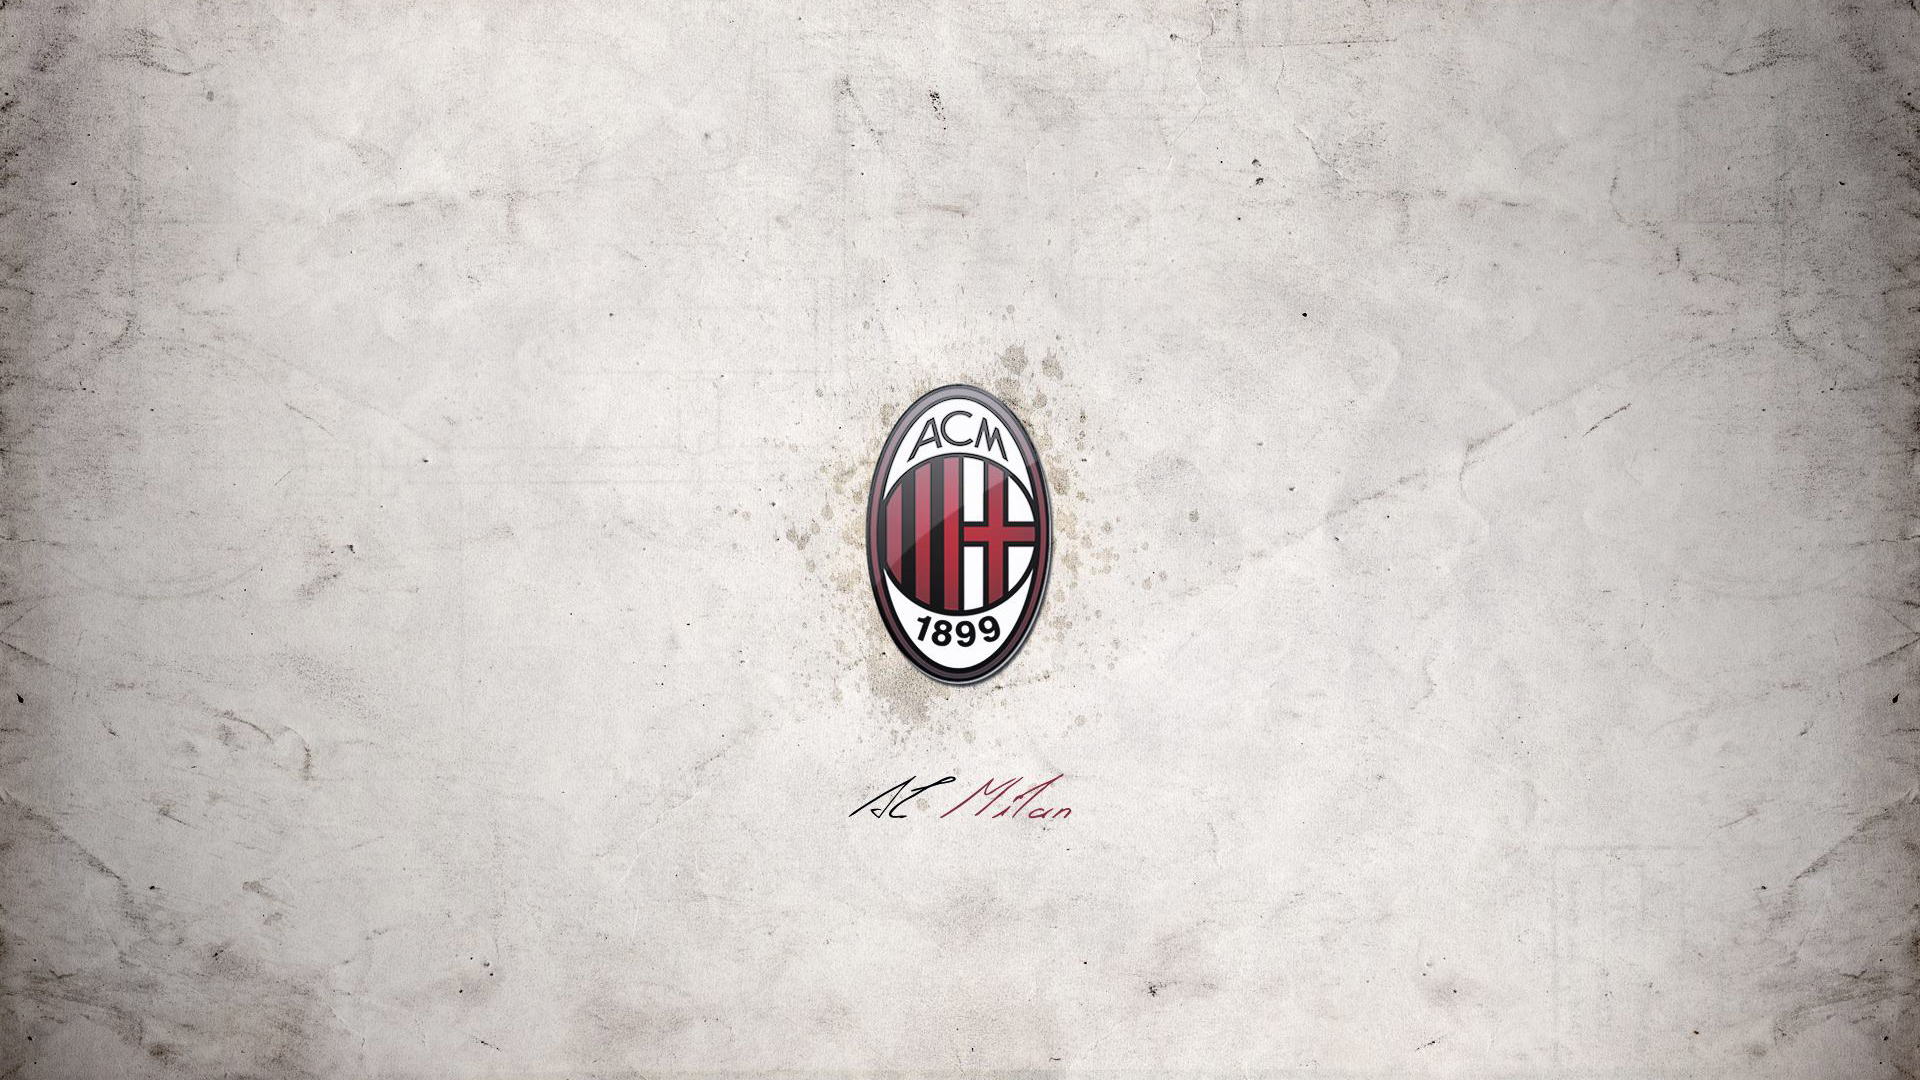 Ac Milan Best Club Hd Image